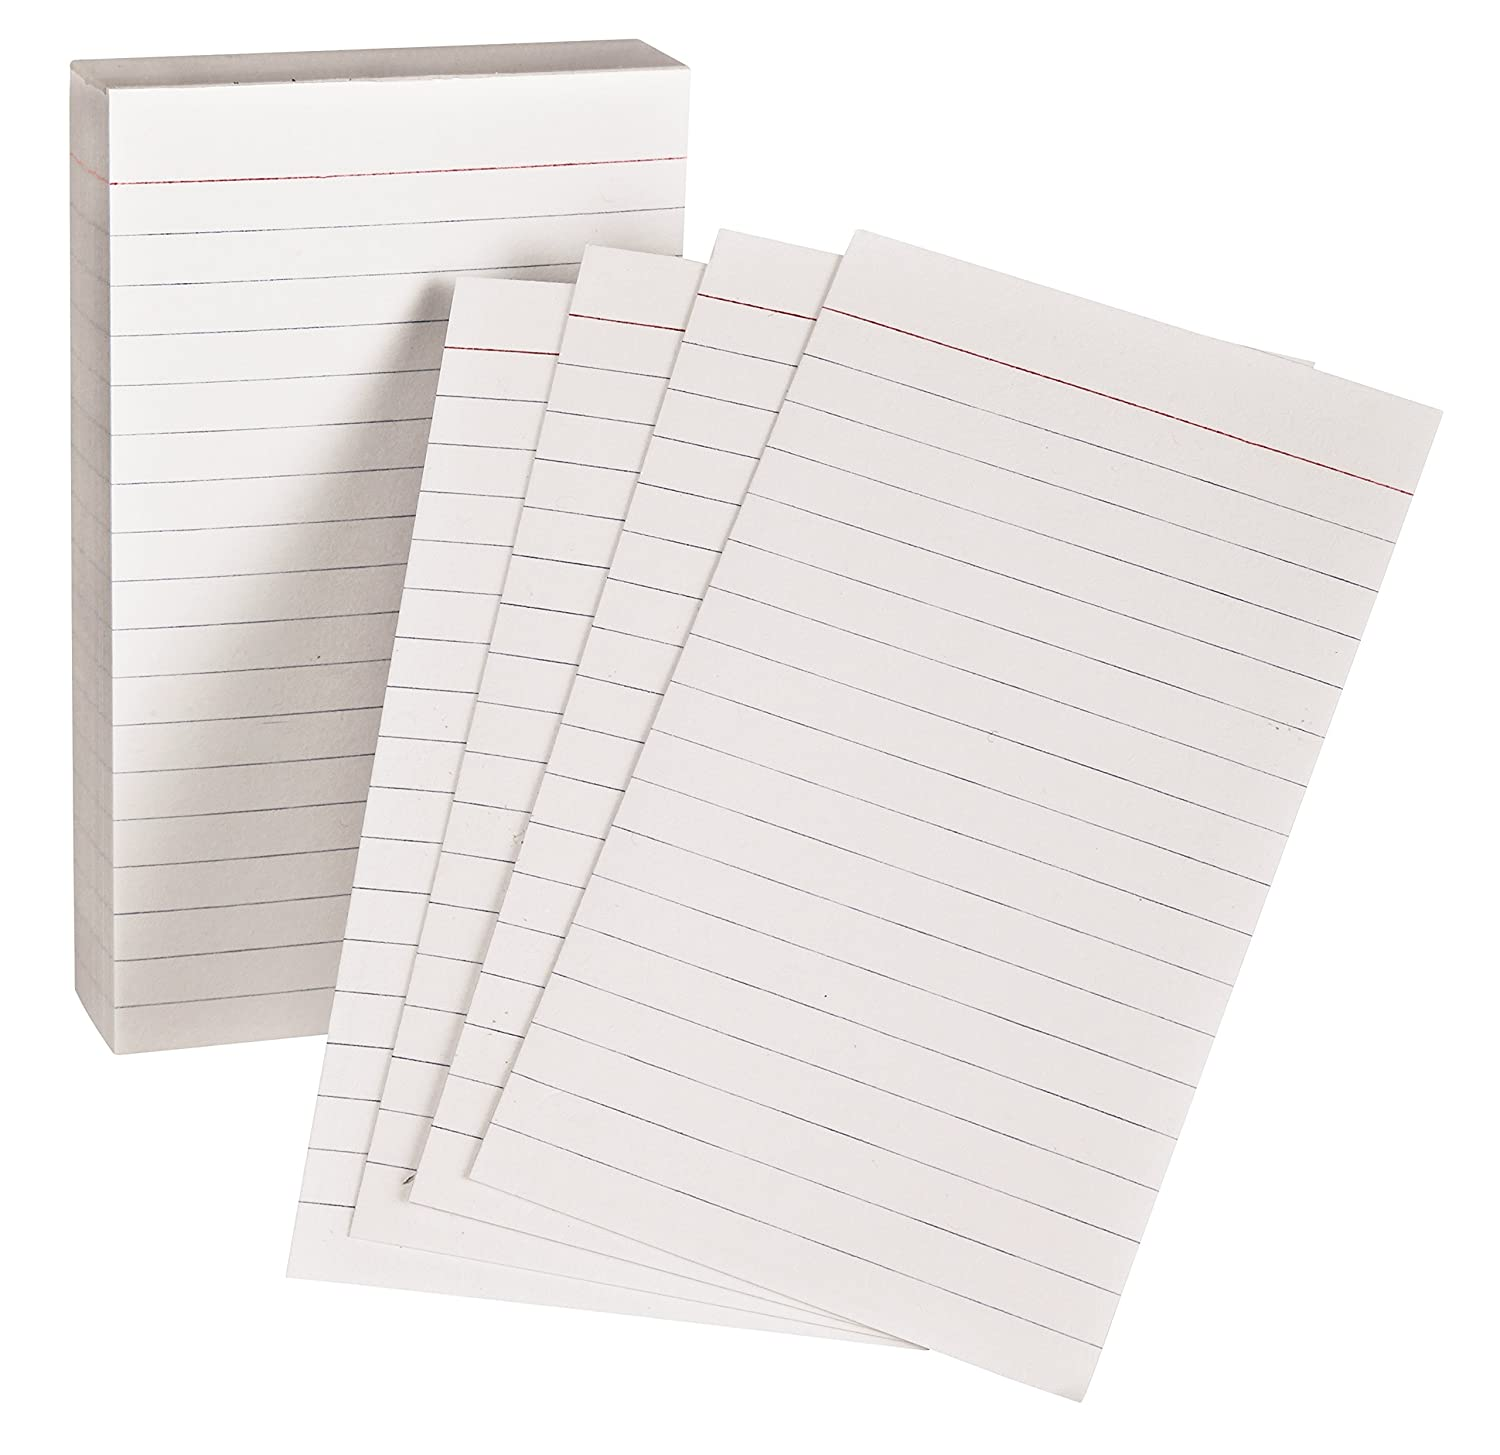 amazoncom oxford padded memo ruled index cards white 5 x 3 inches 100 per pack 006351 handhelds office products